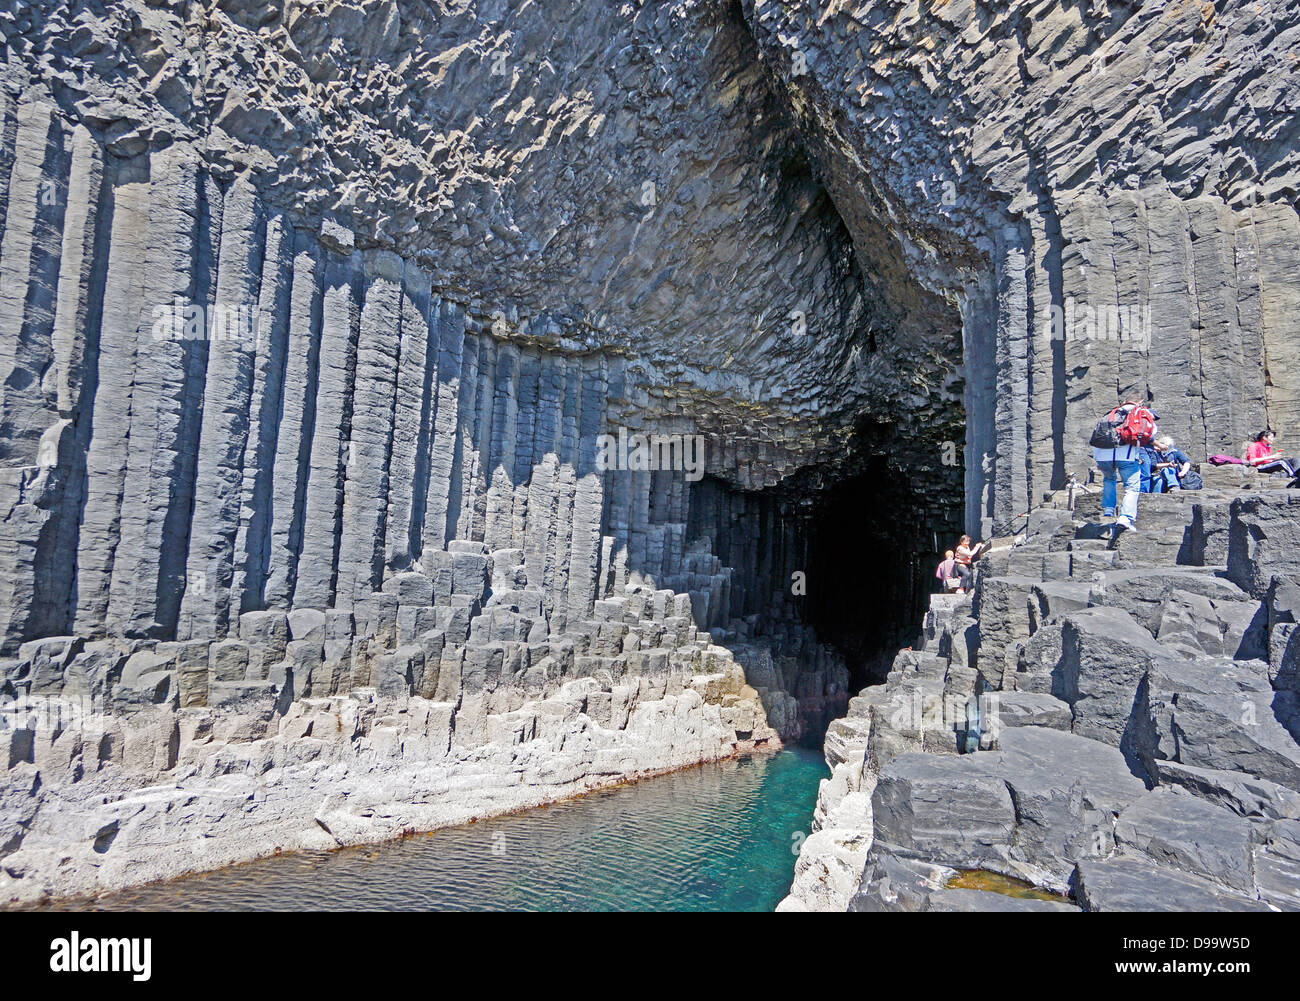 View inside Fingal's Cave on the Island of Staffa Inner Hebrides Scotland - Stock Image